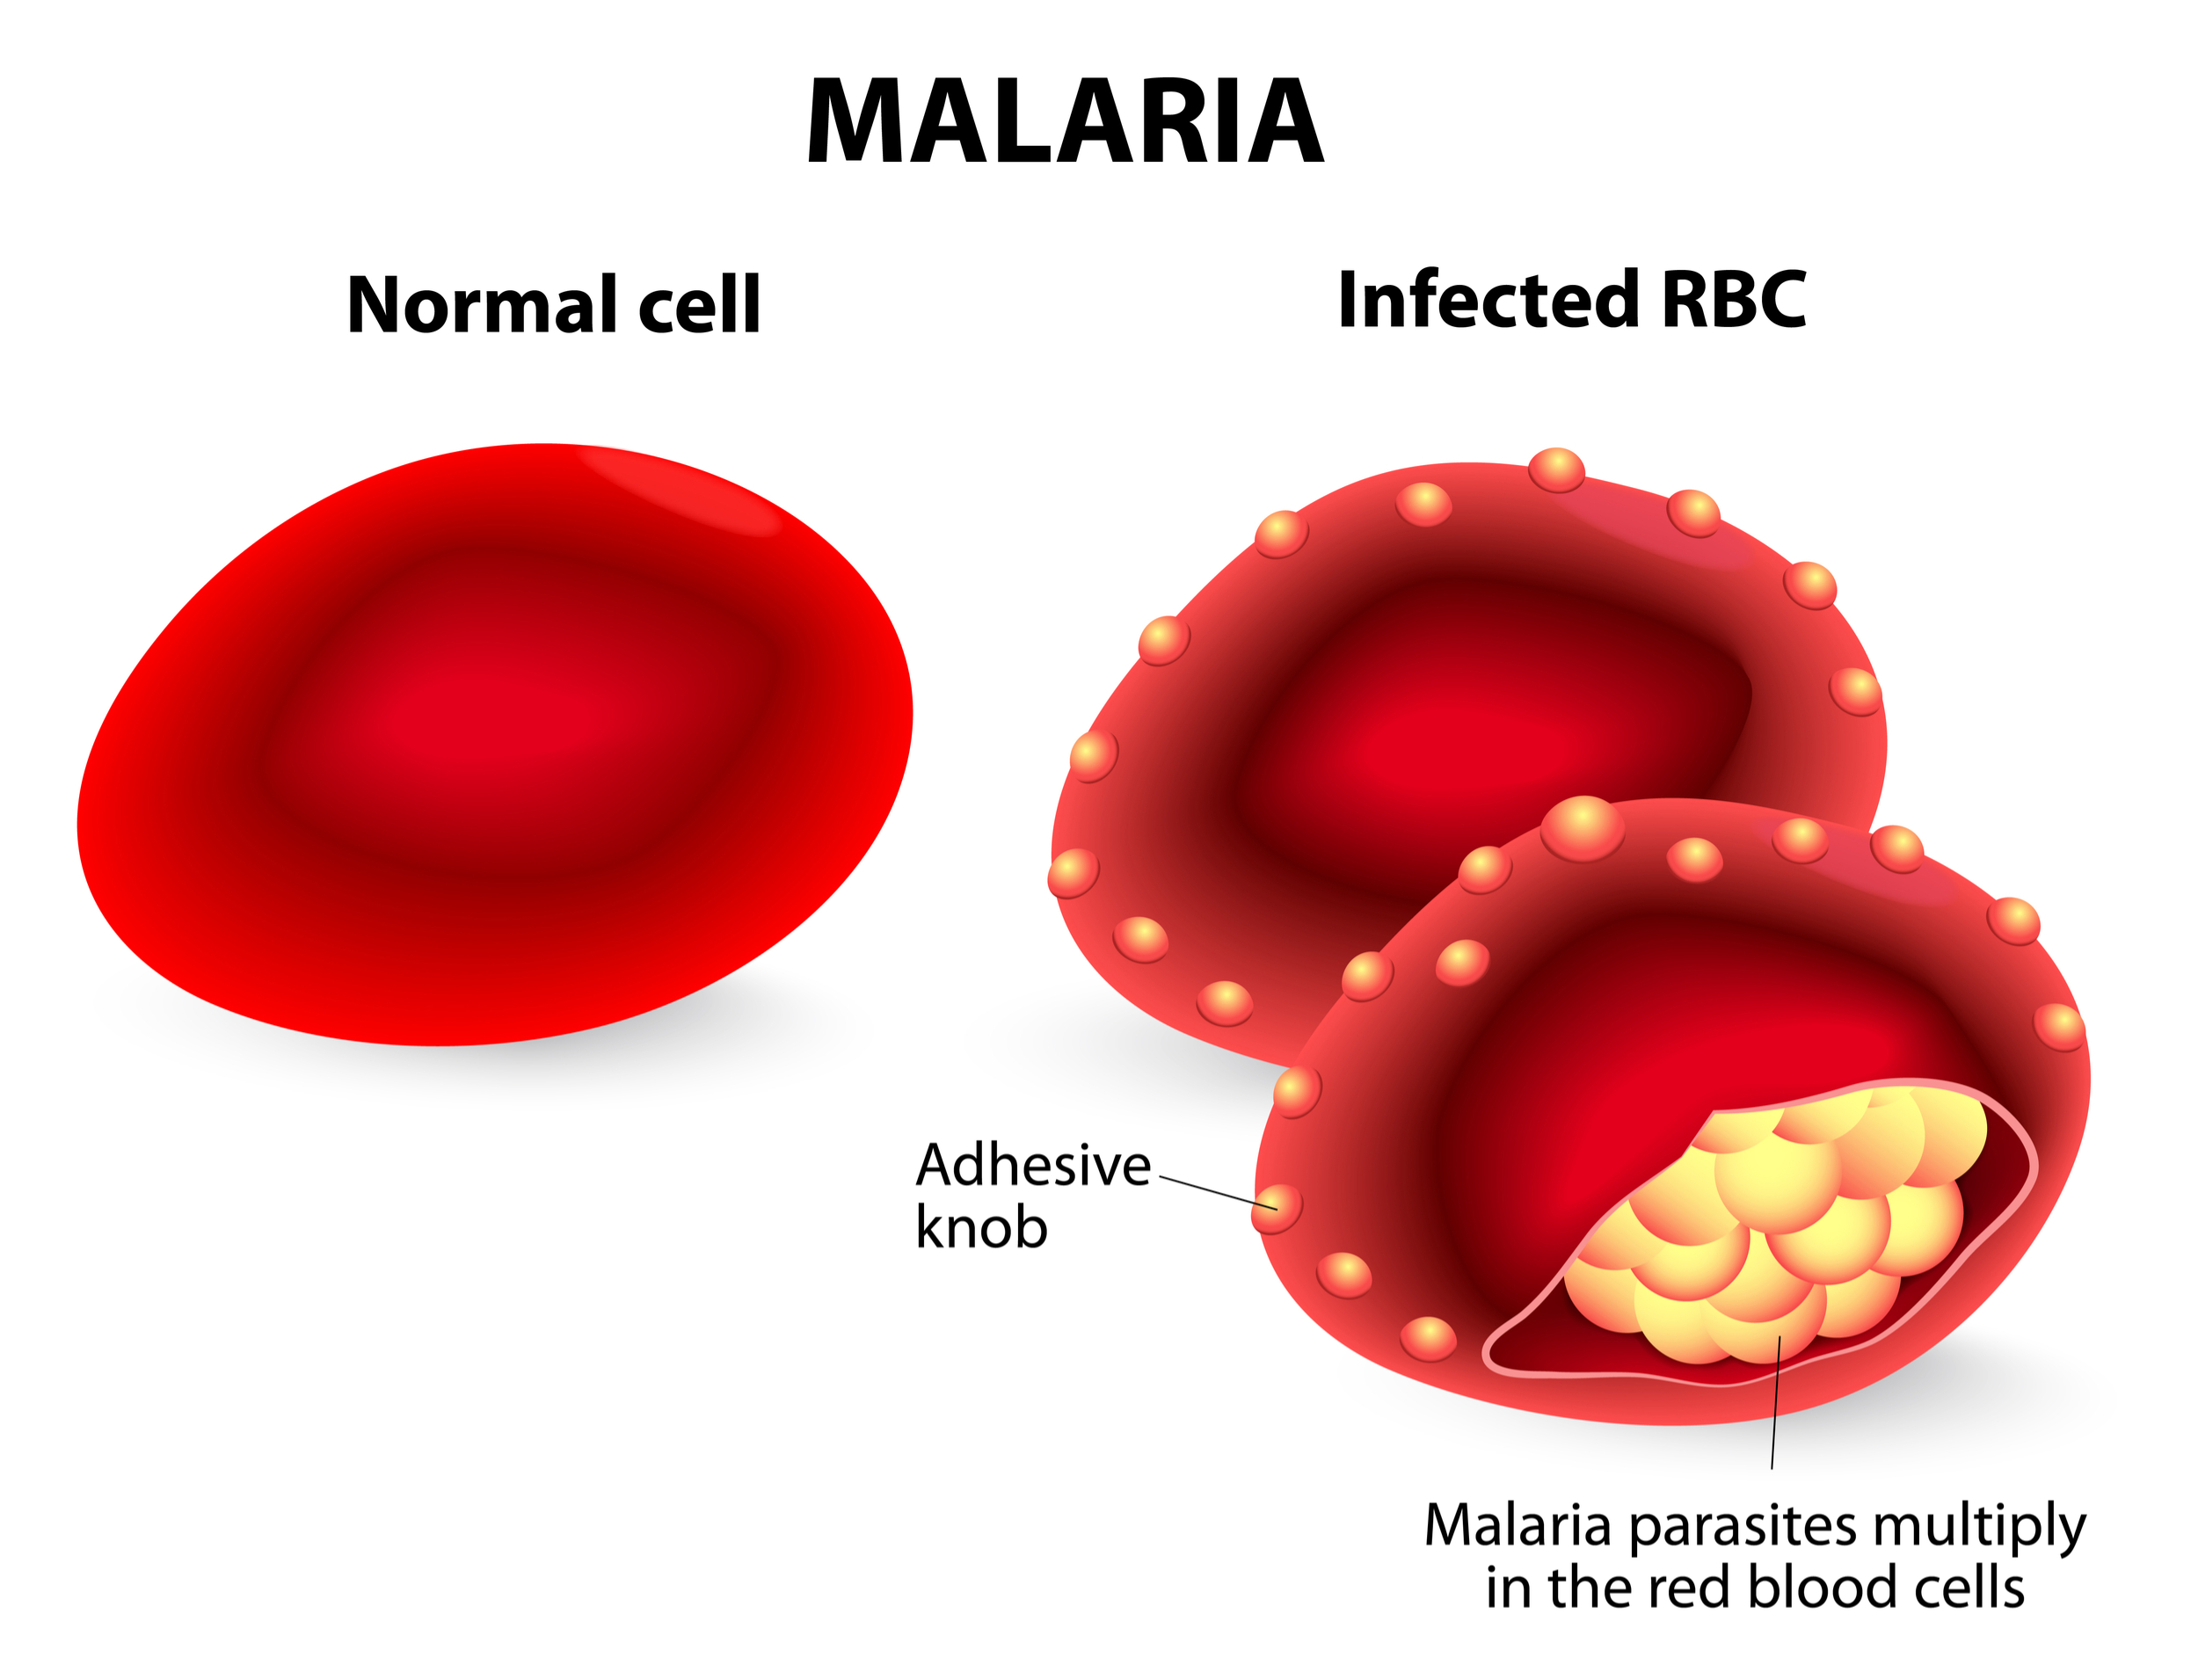 malaria images for presentations infectious disease pictures sydney africa cells cellular